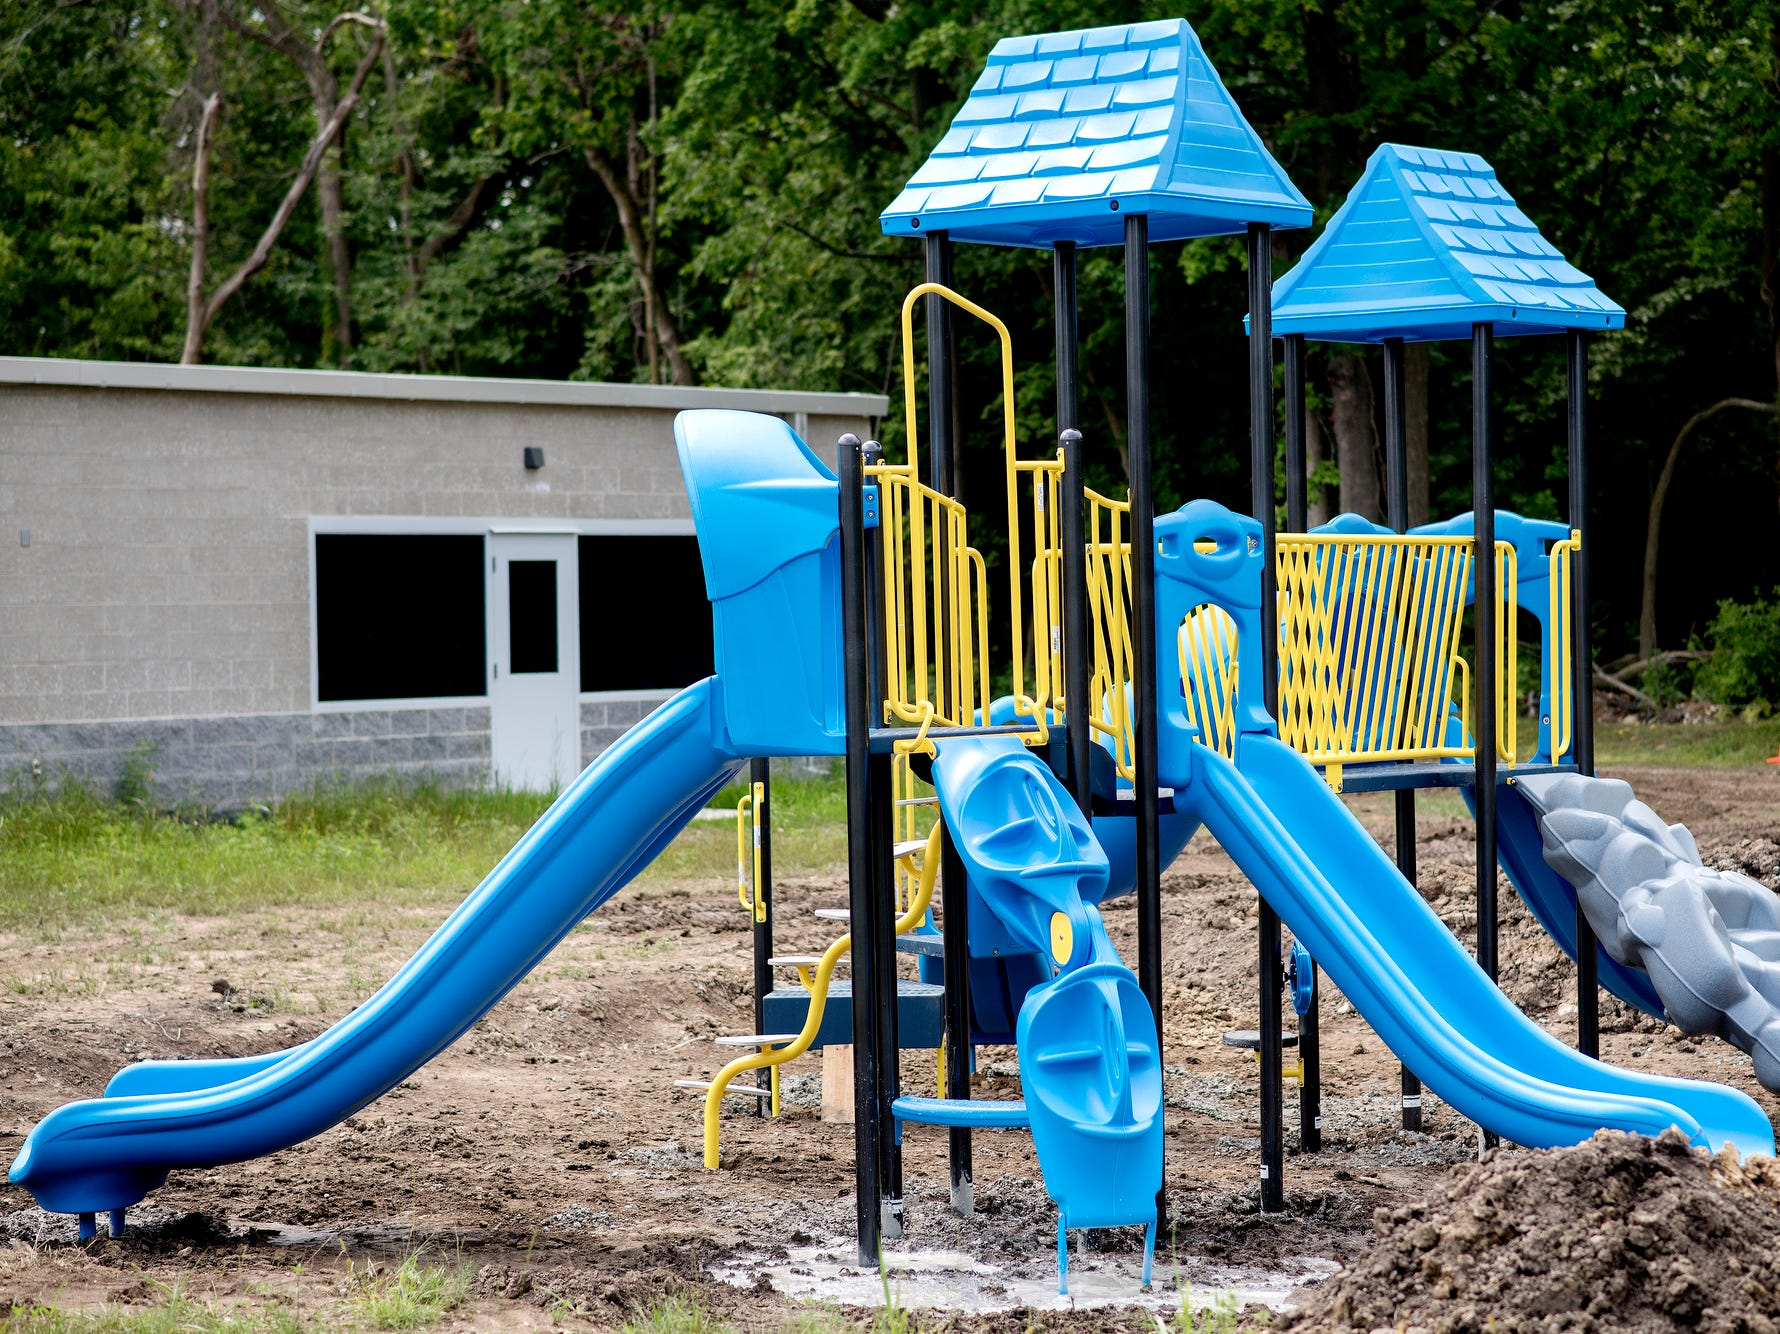 The playground, photographed on Wednesday, Aug. 1, 2018, was installed this week at Cole Academy's East Lansing campus. The school, Cole Academy's second campus, is opening this fall.